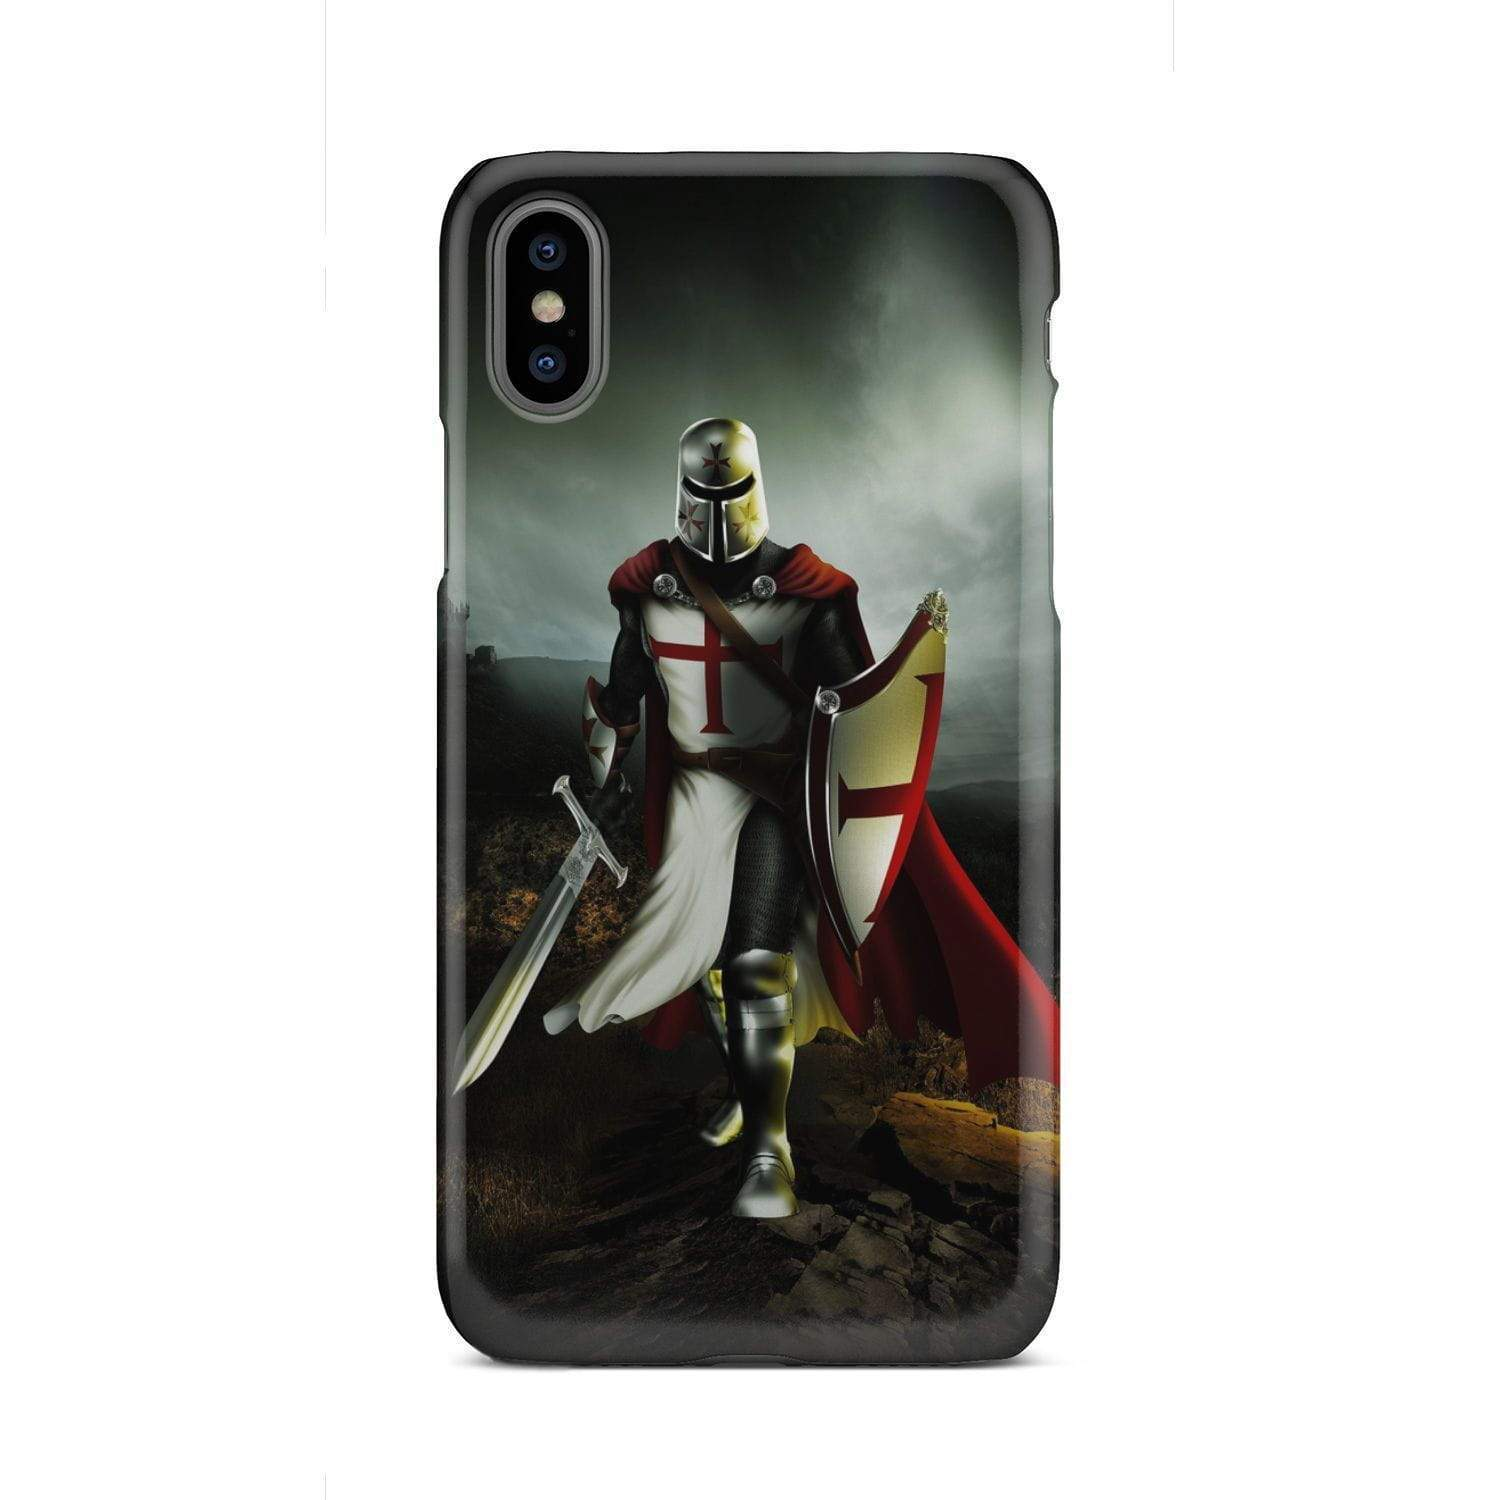 Phone Case - Knight Templar Iphone X